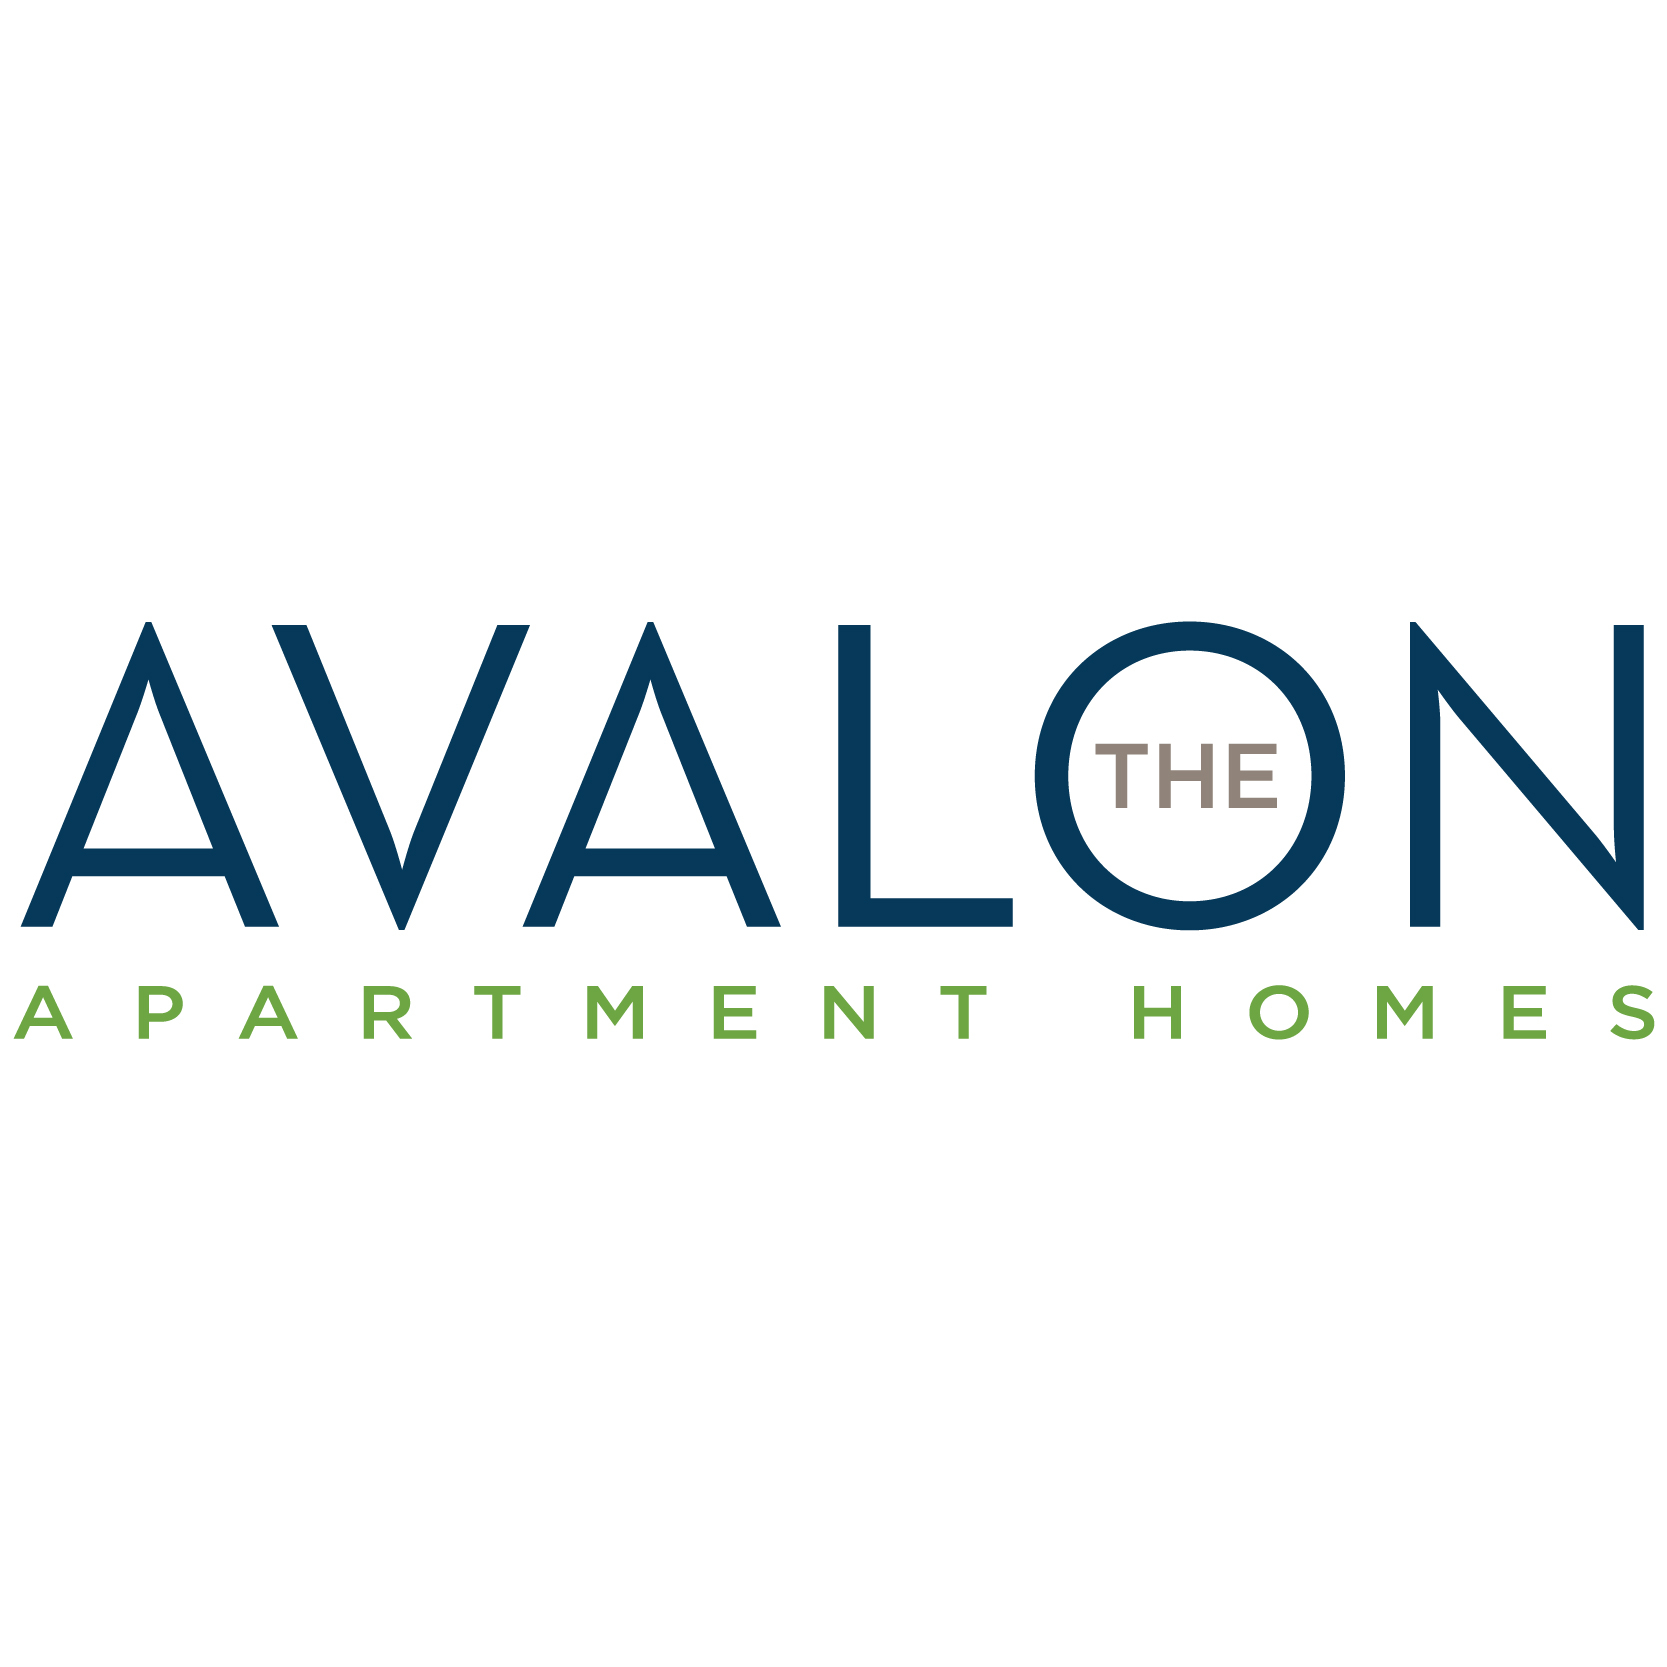 The Avalon Apartment Homes - Chesterfield, MO - Apartments